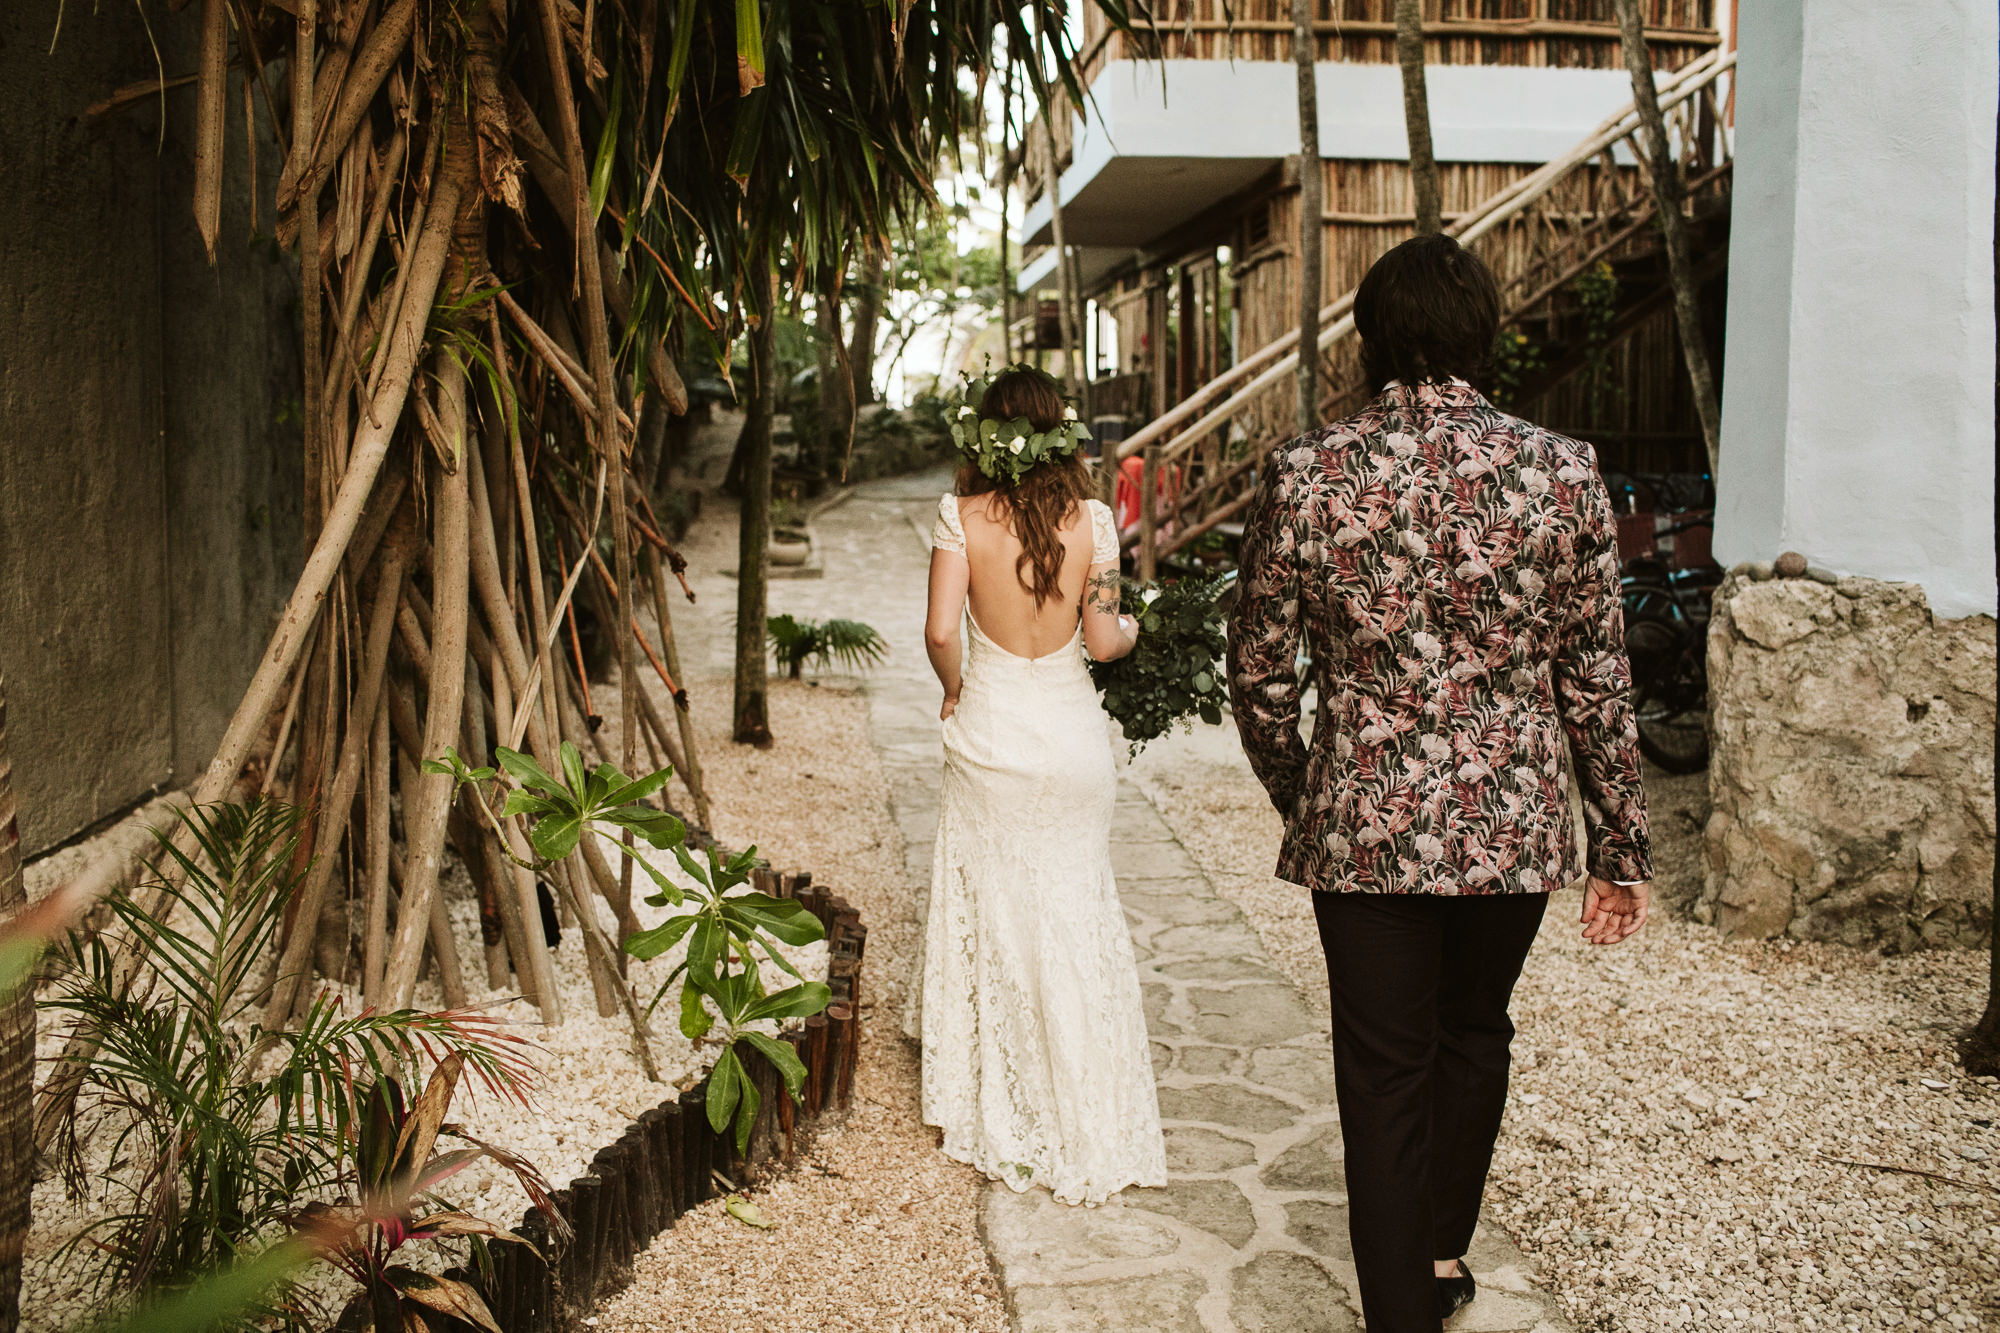 cancun_beach_wedding_casa_malca-283.jpg